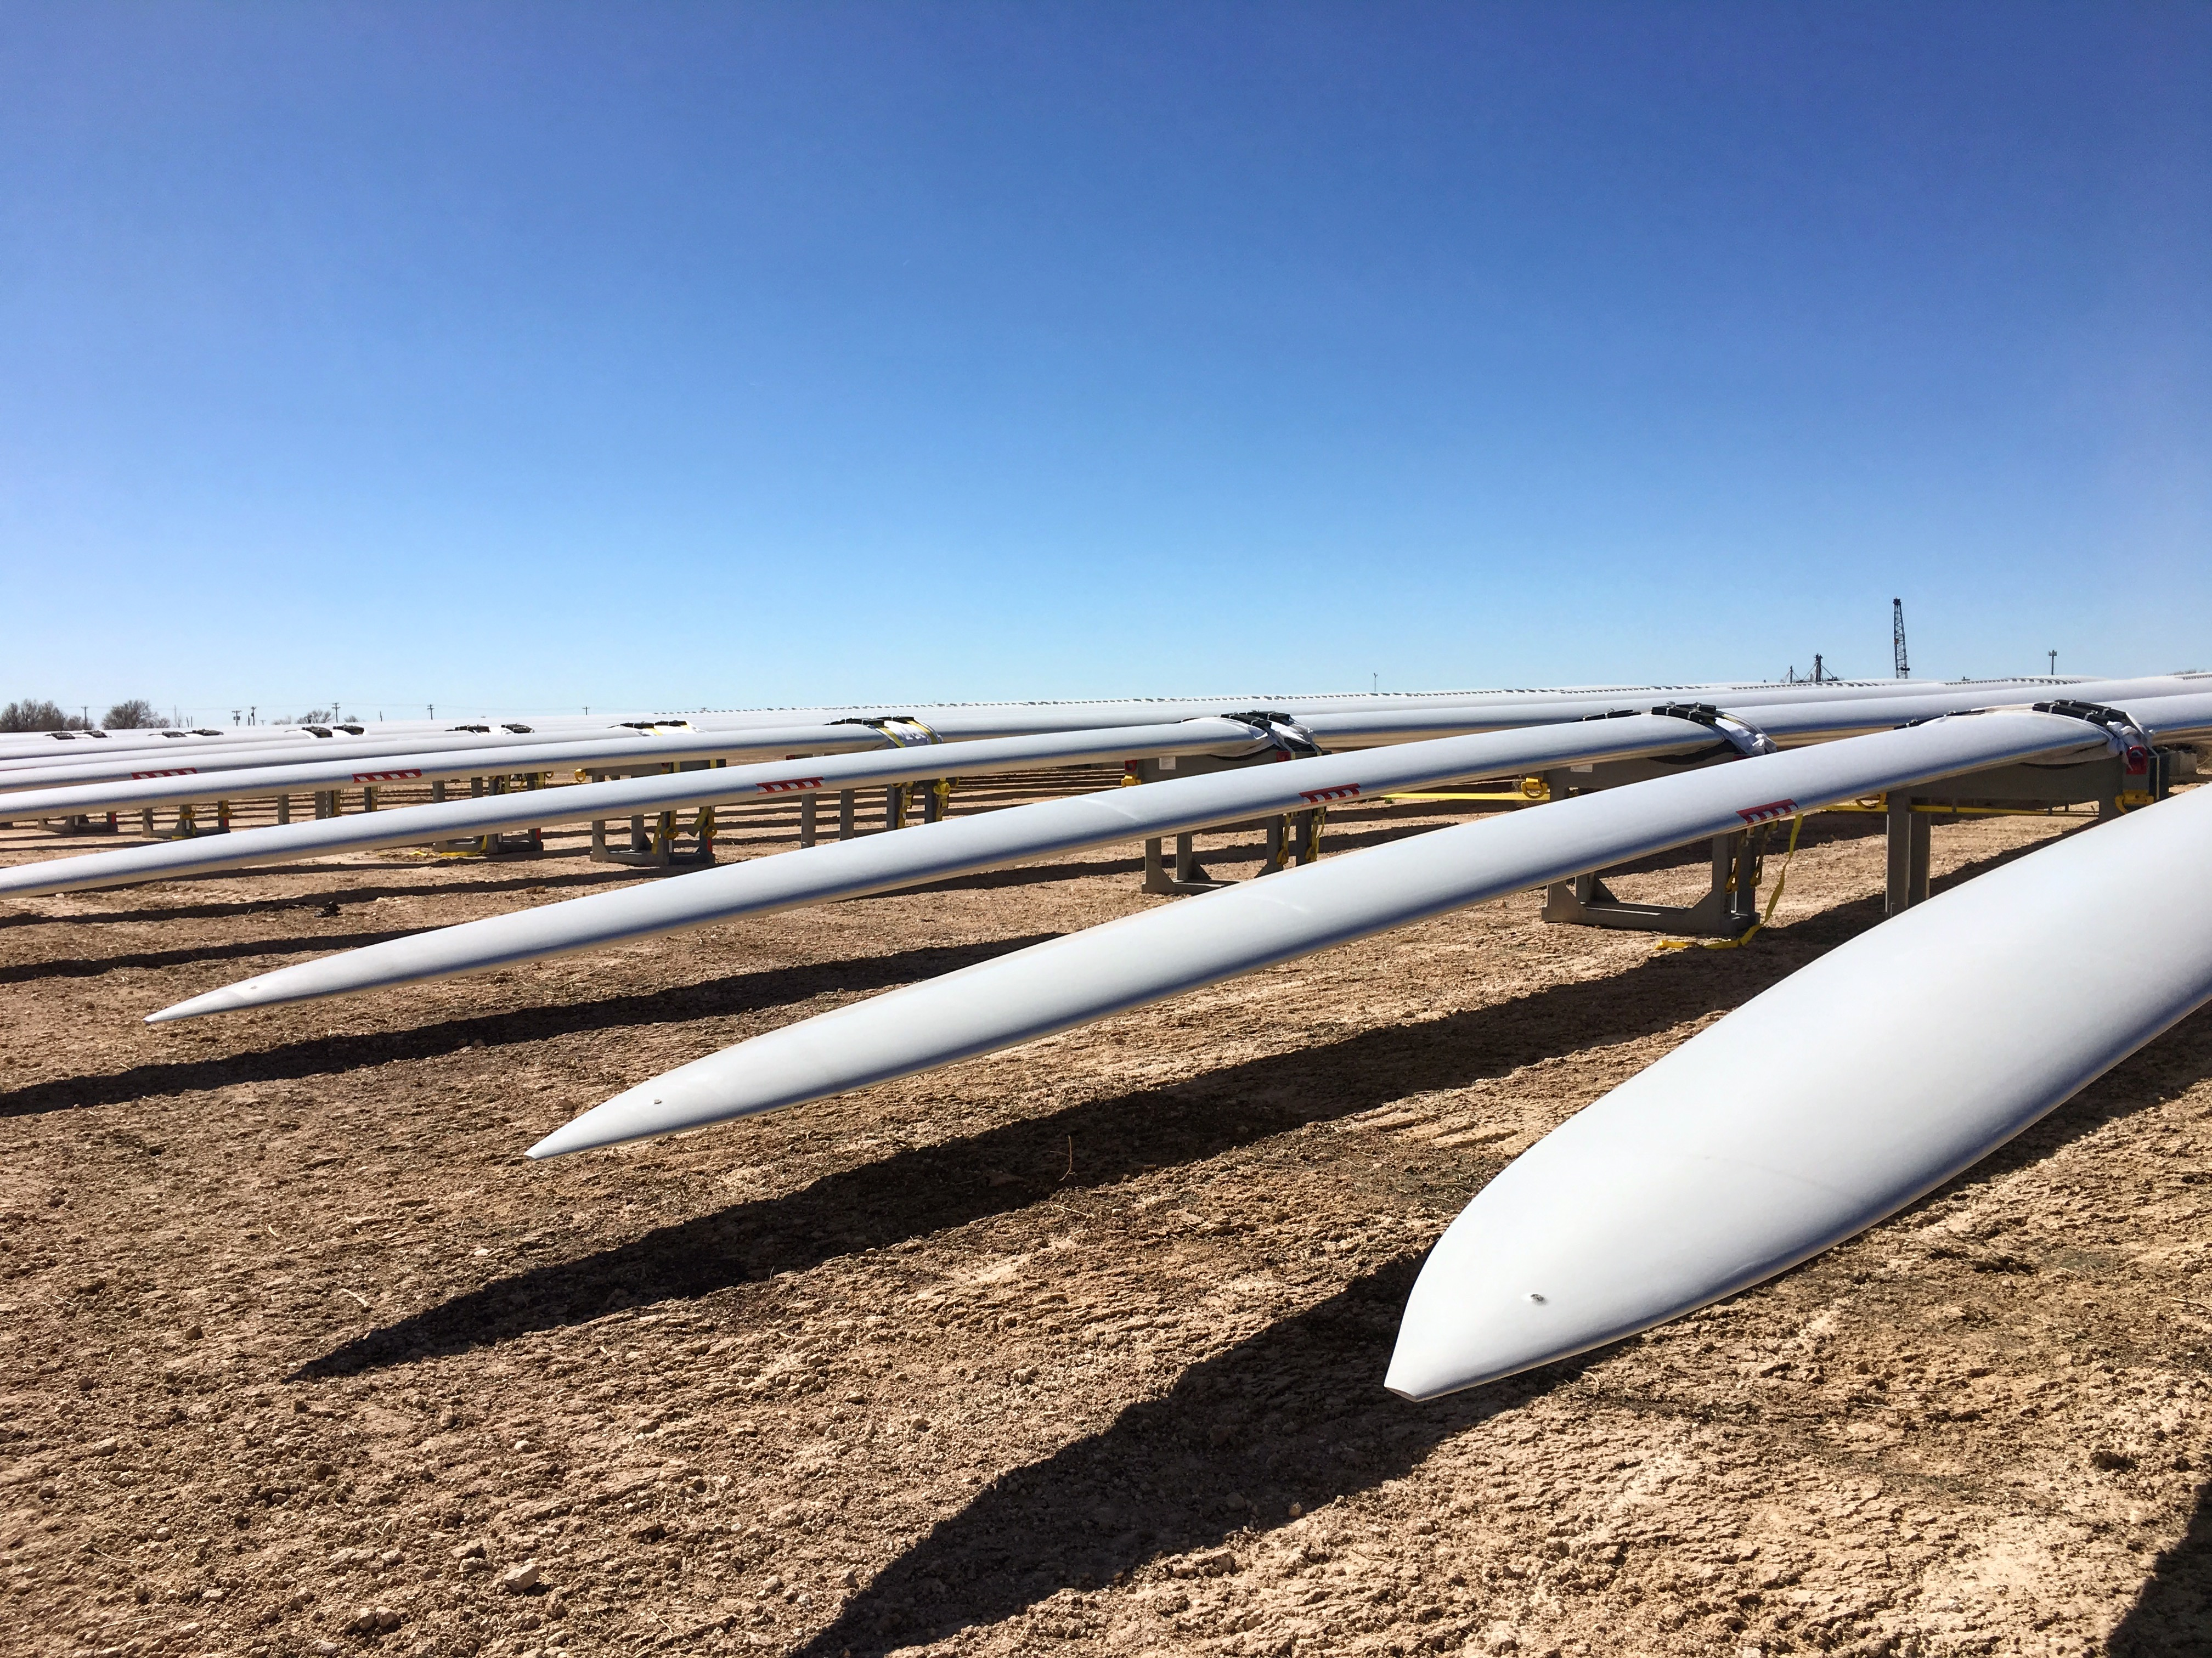 BNSF Logistics - experts in the movement of wind turbine components for safe, secure delivery to the lay-down site.